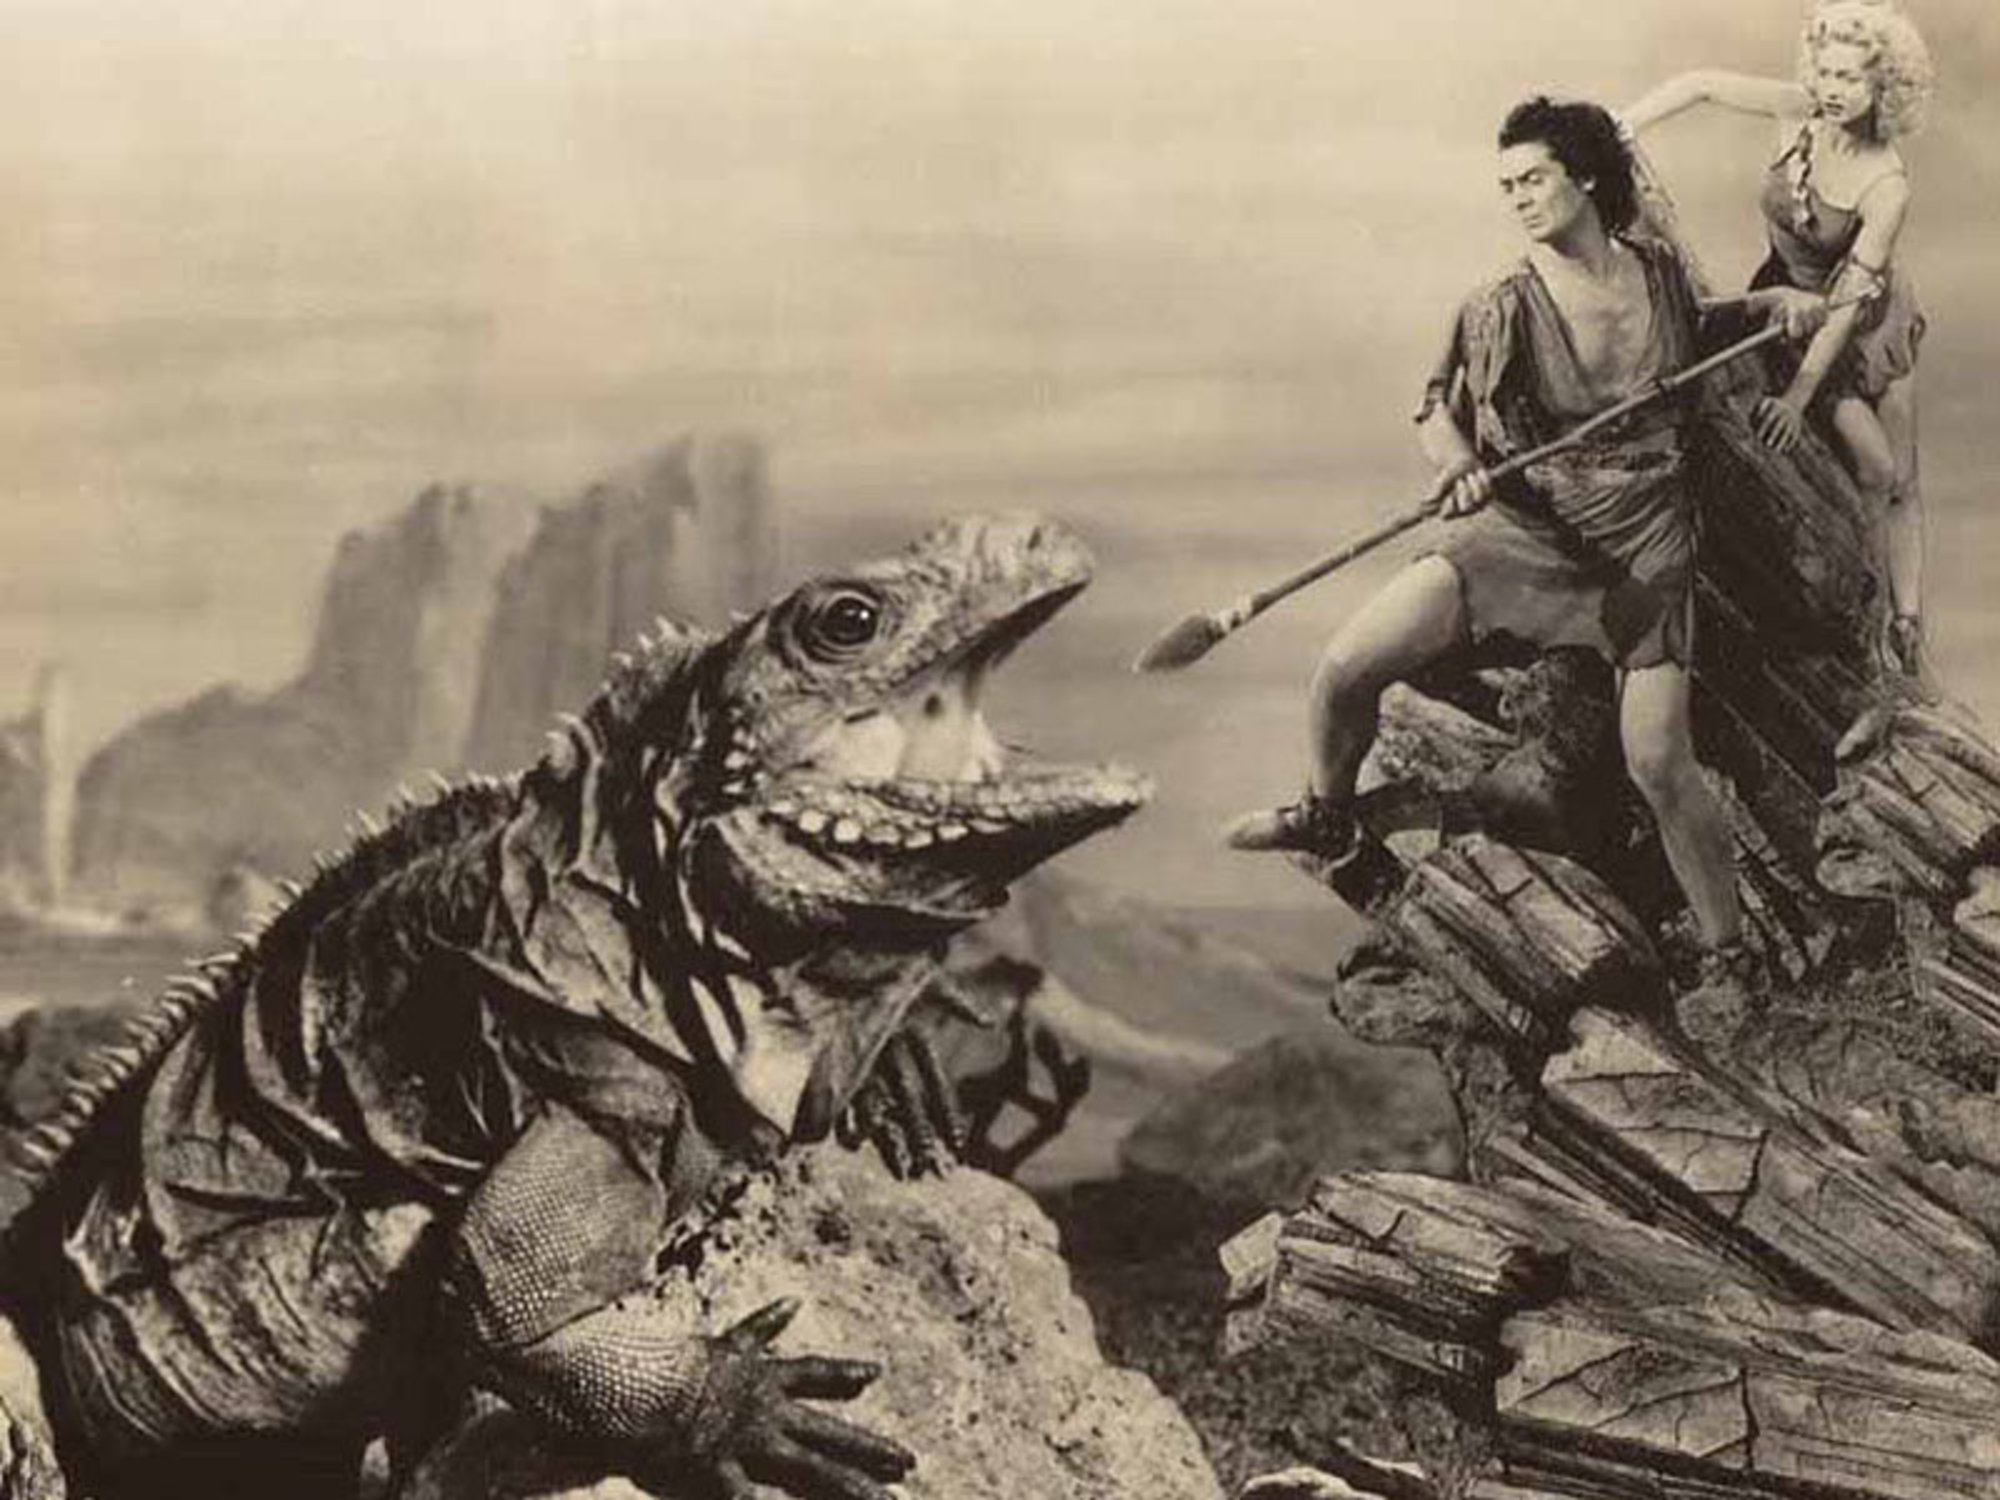 Victor Mature fends off a dinosaur attack to protect Carole Landis in One Million B.C. (1940)